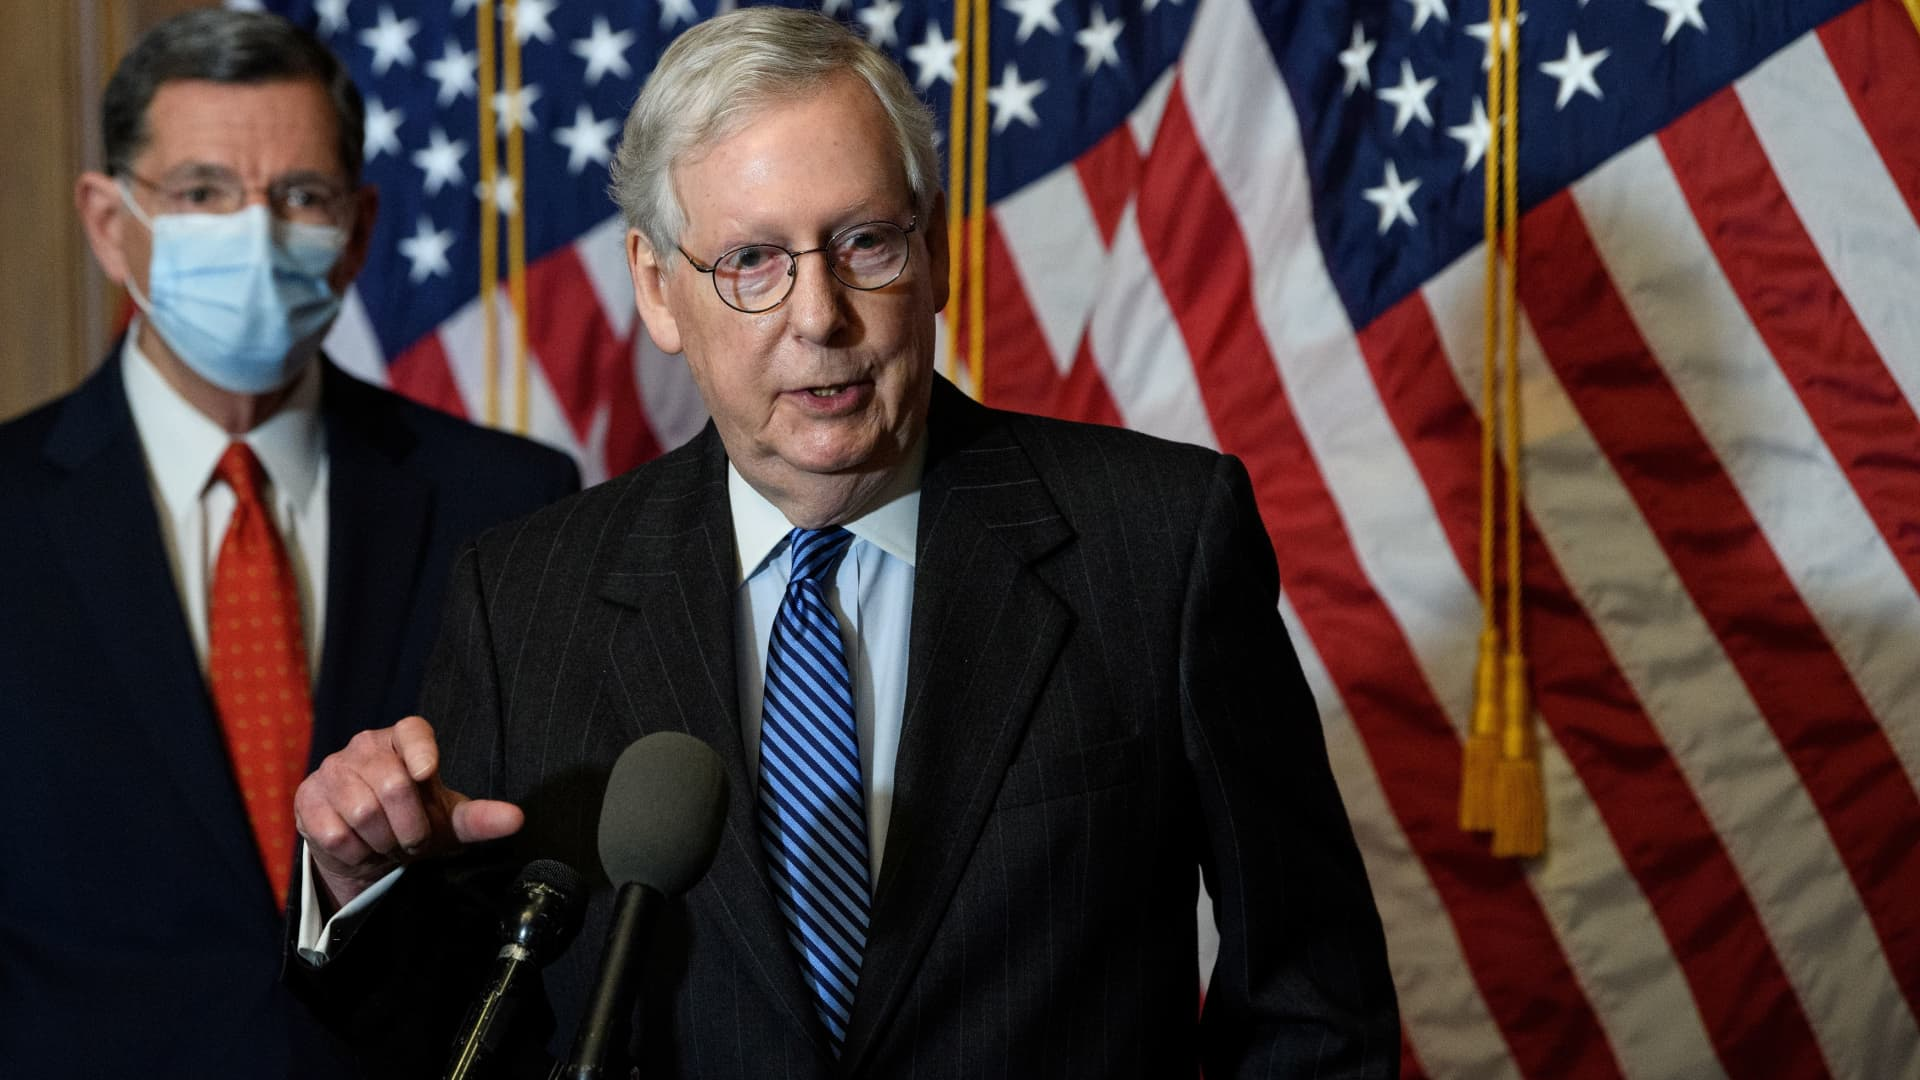 U.S. Senate Majority Leader Mitch McConnell (R-KY) speaks at a news conference at the U.S. Capitol in Washington, U.S., December 15, 2020.